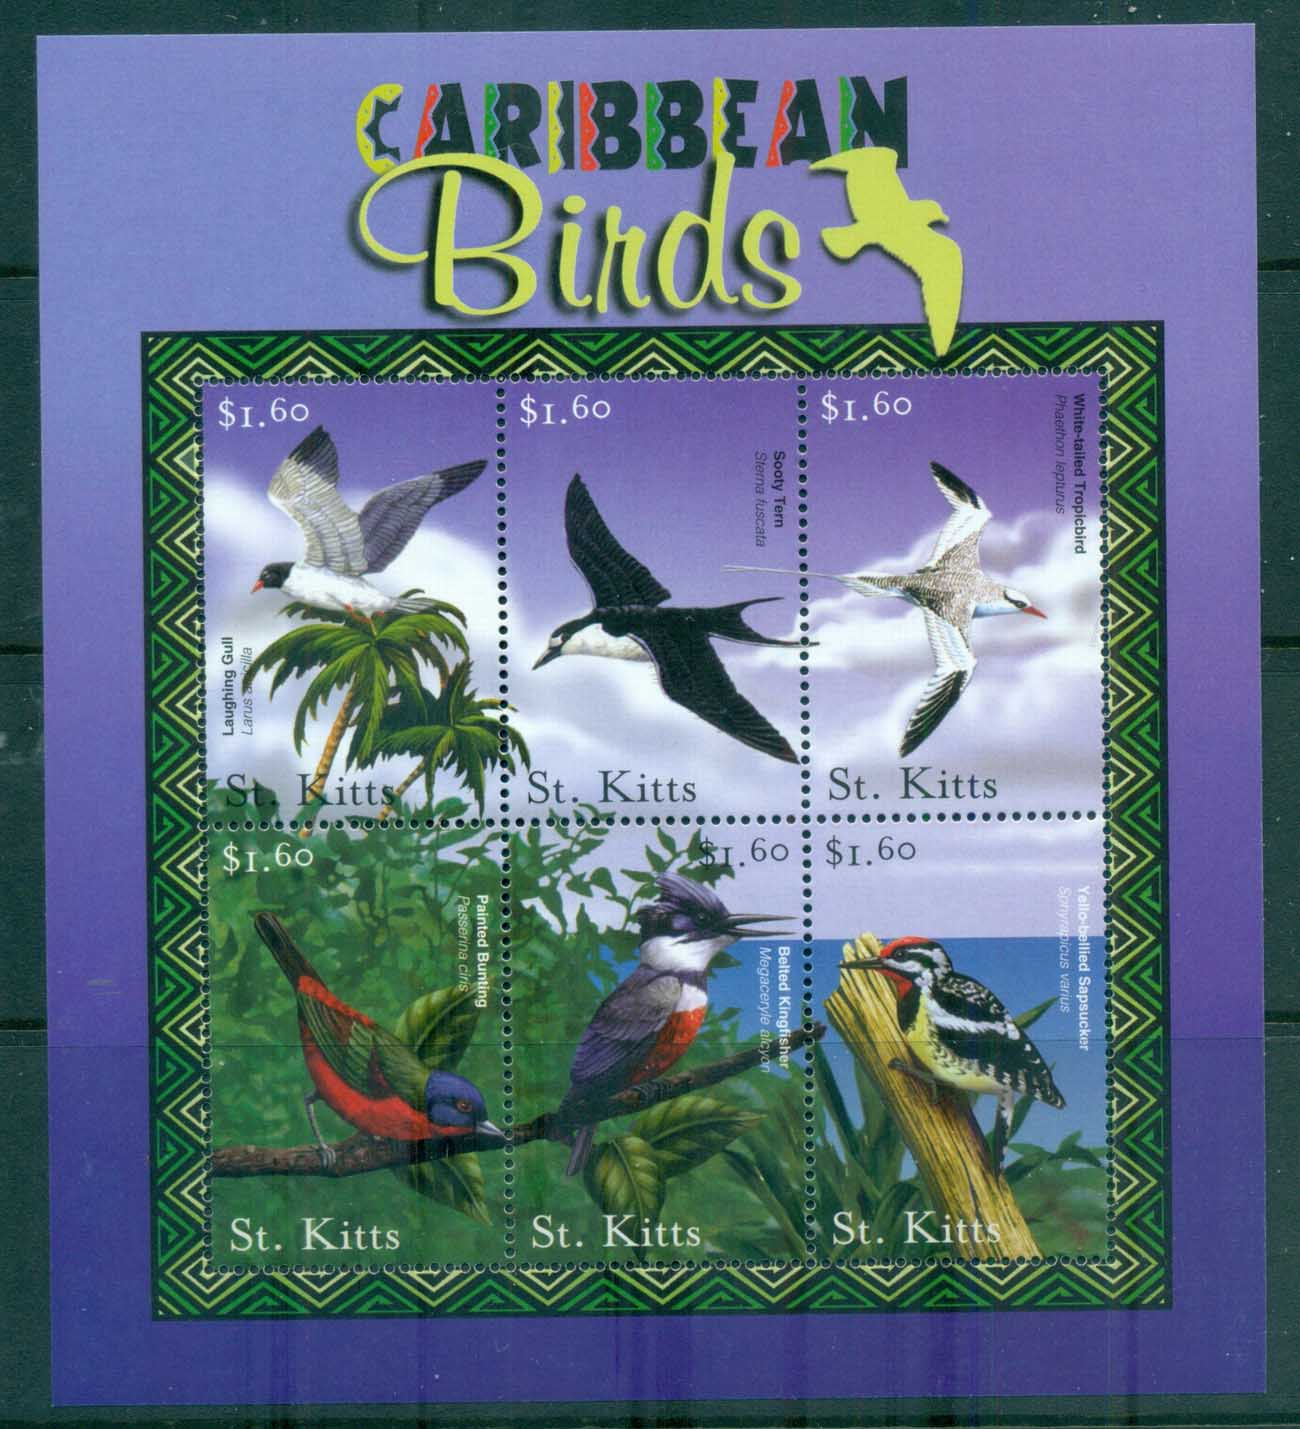 St Kitts 2001 Caribbean Birds MS MUH